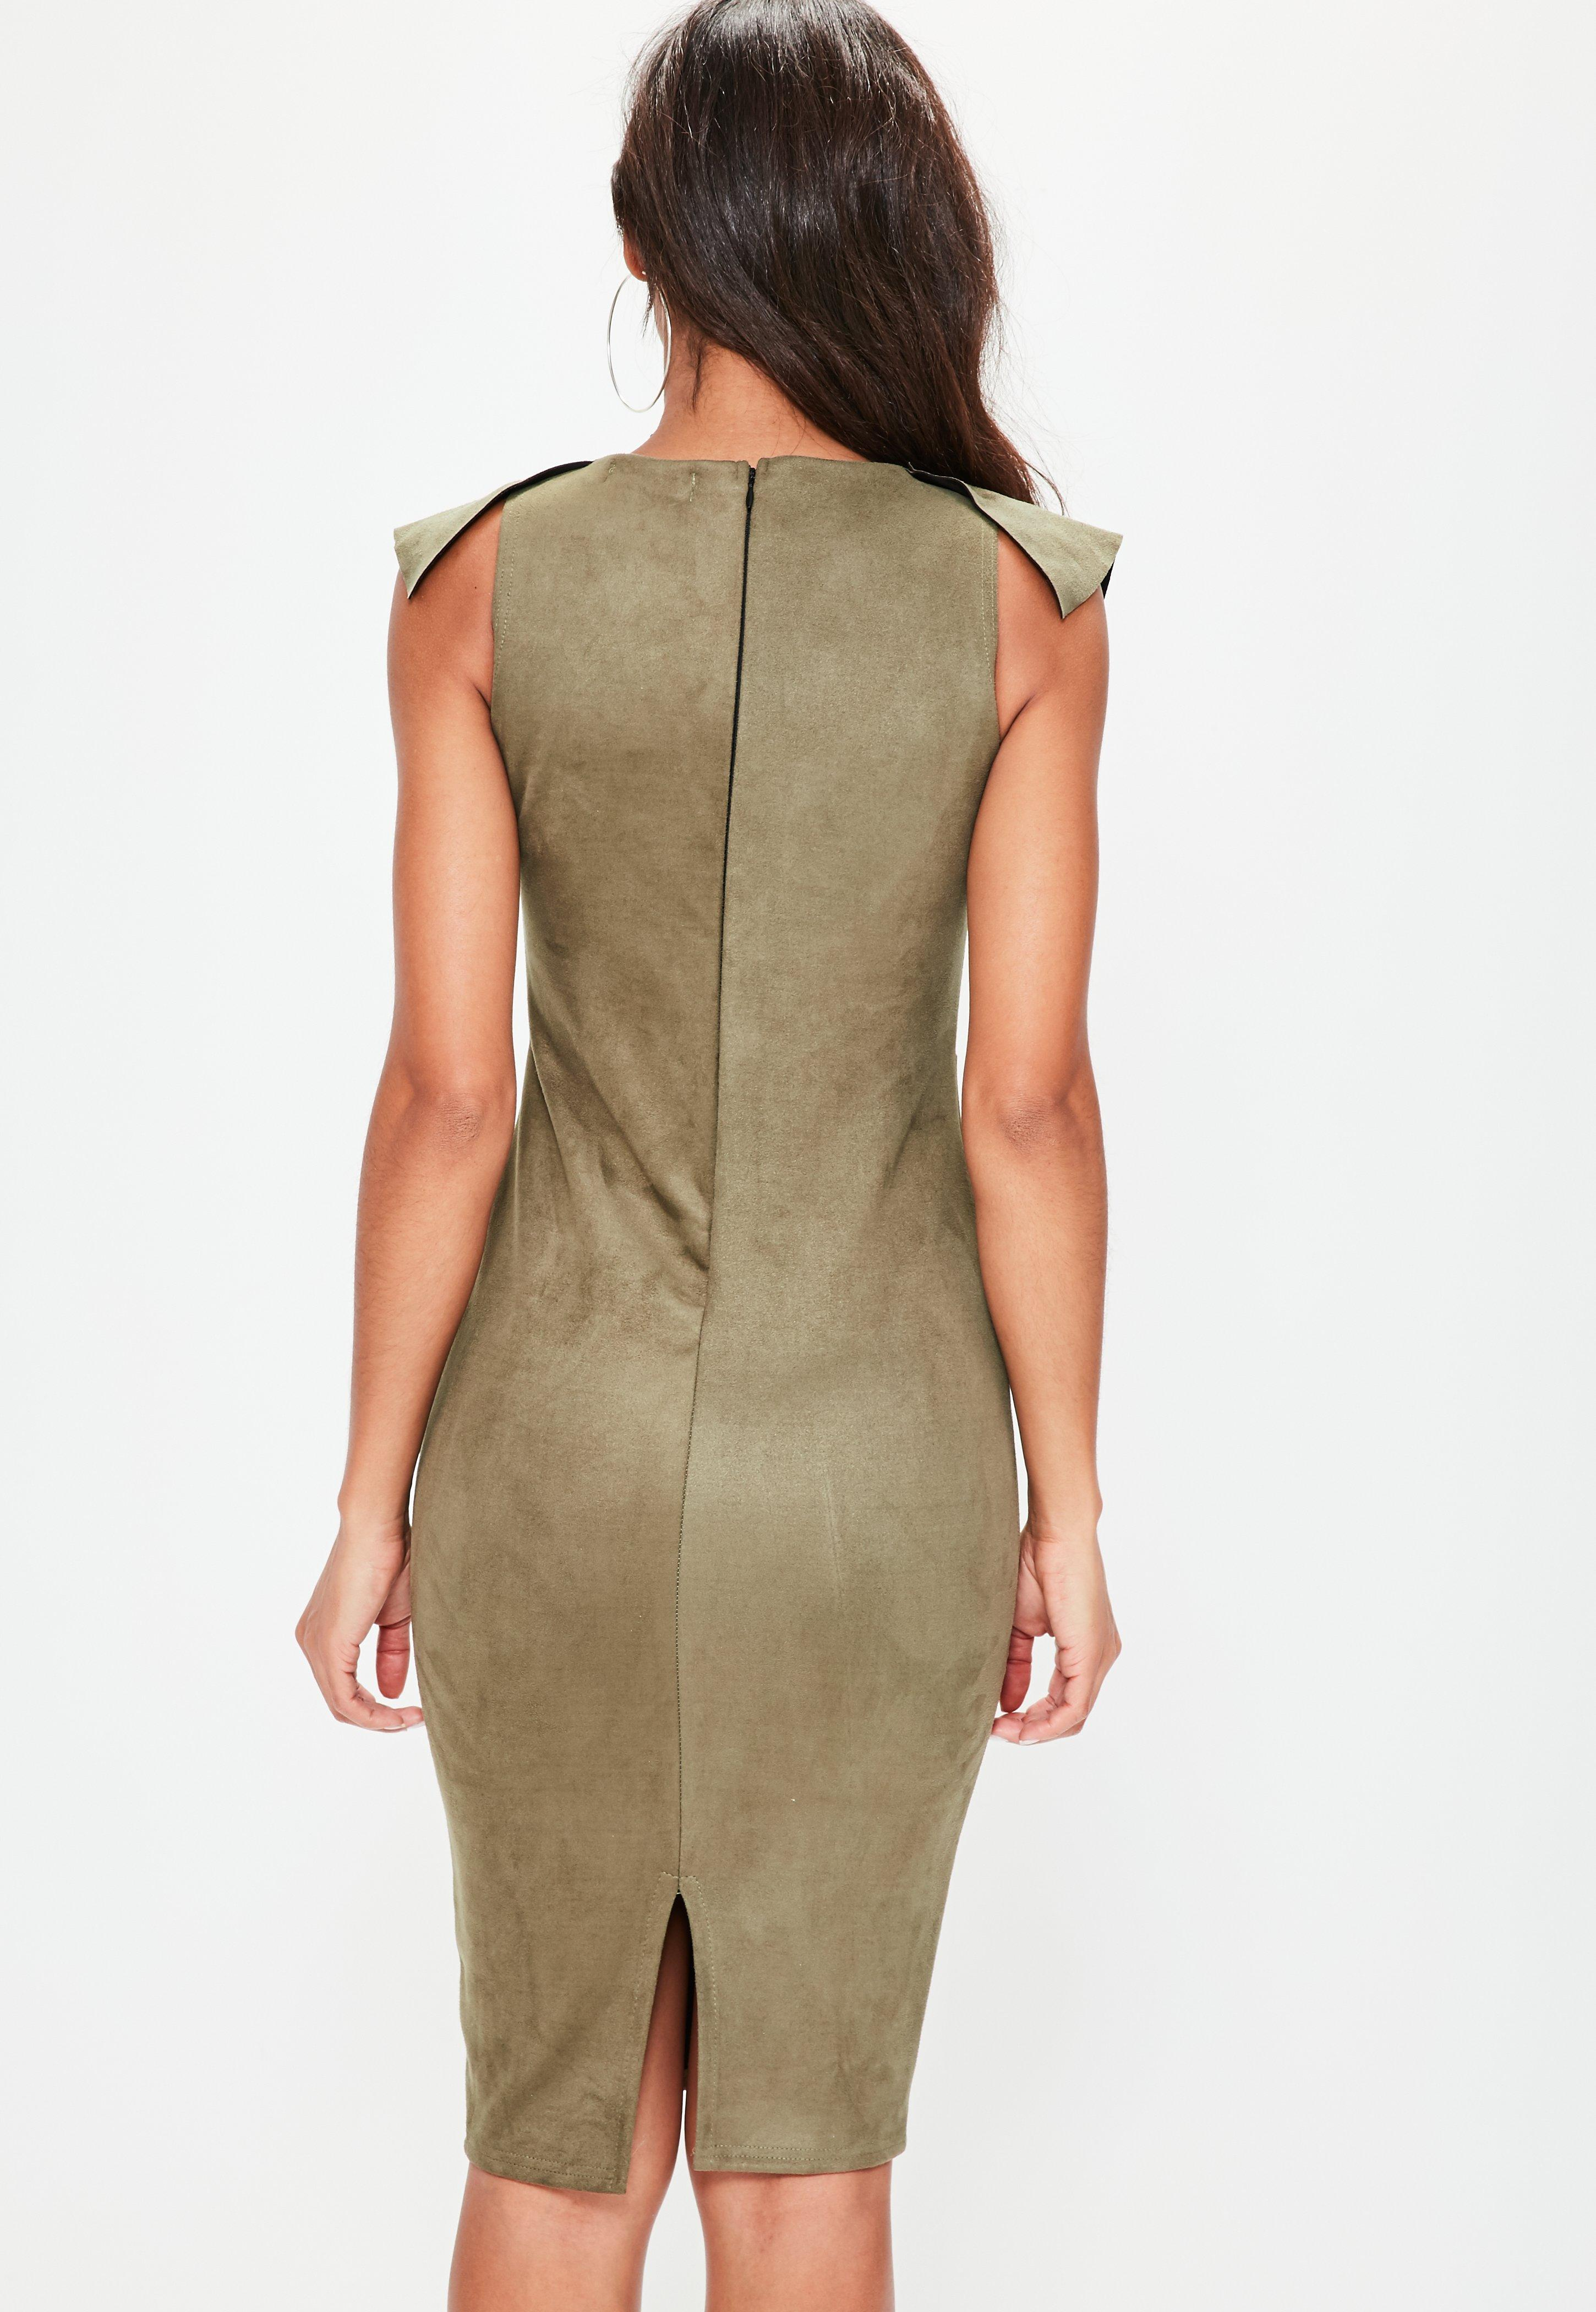 White suede digital placement dress